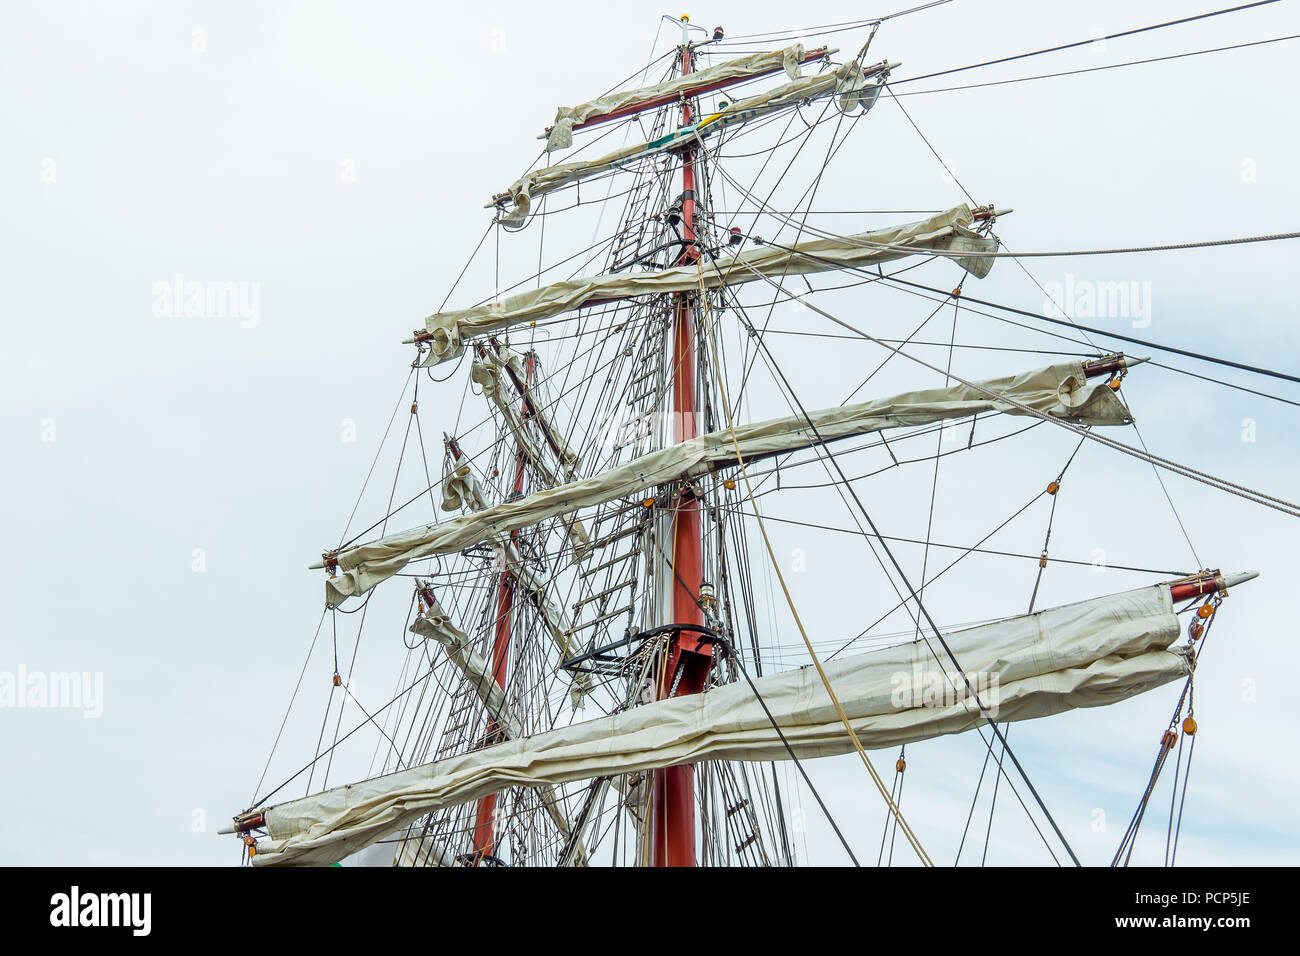 The rigging of a square rigger, the brig Aphrodite, foreamast and mainmast with rotated yards against the blue sky, Hundested, Denmark, July 31, 2018 - Stock Image